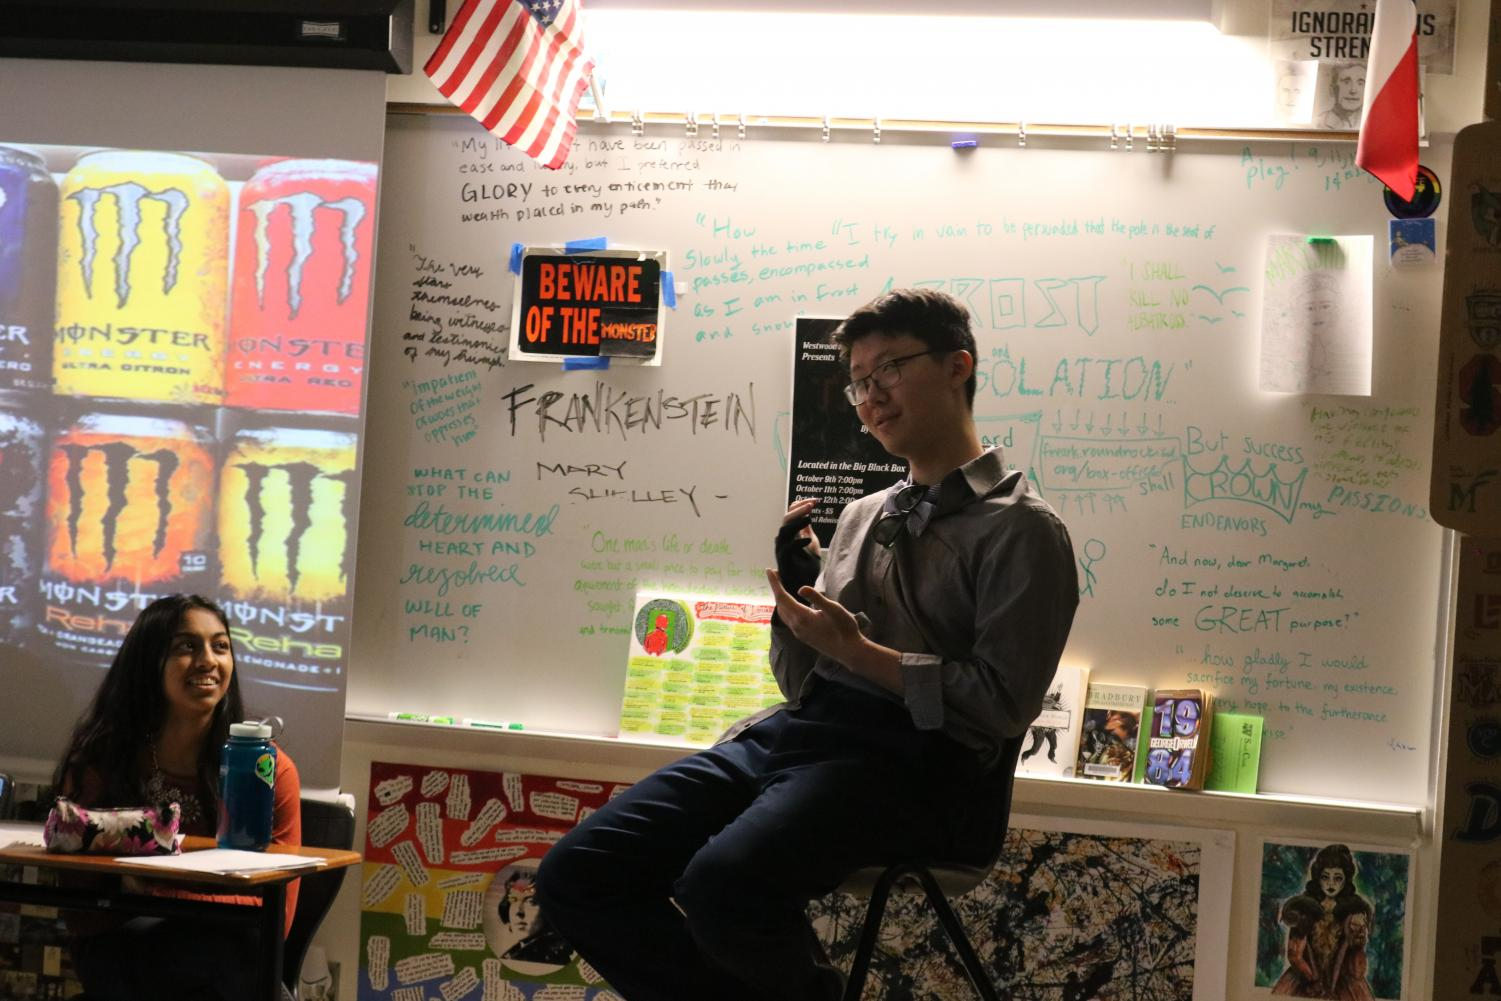 In+an+attempt+to+show+how+much+of+a+monster+the+drink+%22Monster%22+is%2C+Carson+Wang+%2720+shows+his+stiff+hand.++He+explains+that+the+amount+of+sugar+in+the+drink+causes+crazy+things+to+happen+like+this.